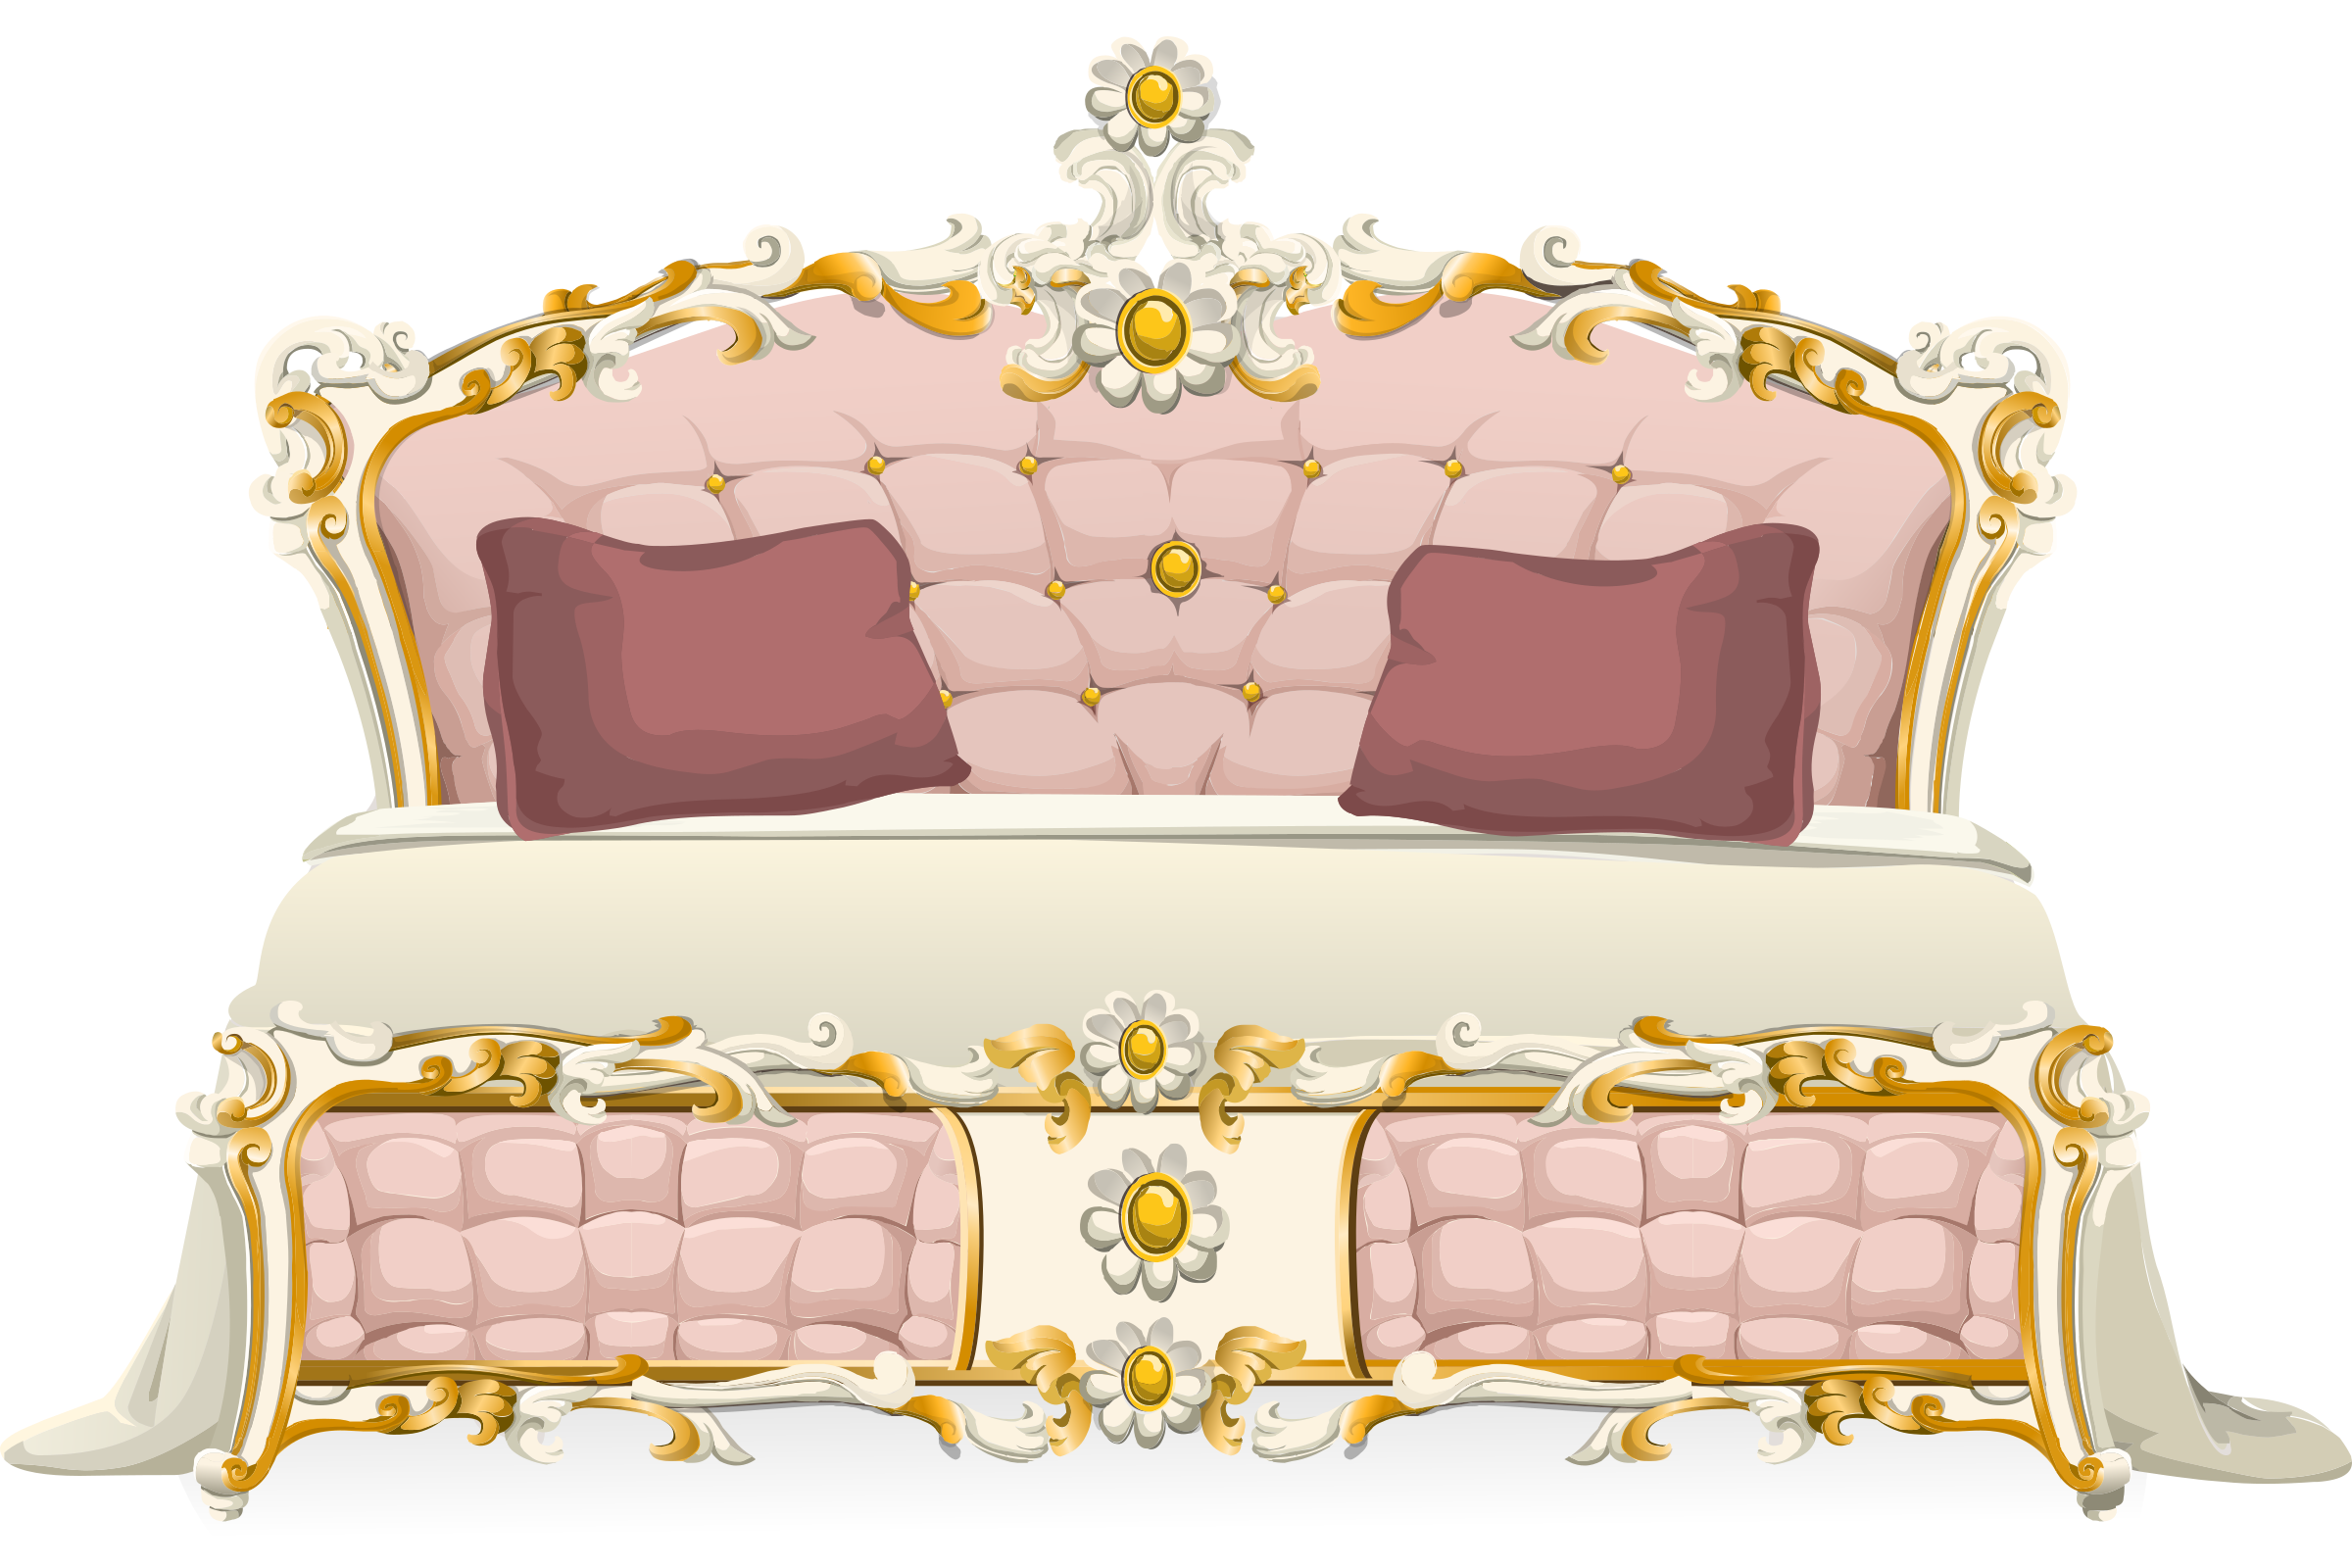 Pink baroque bed from Glitch  by anarres